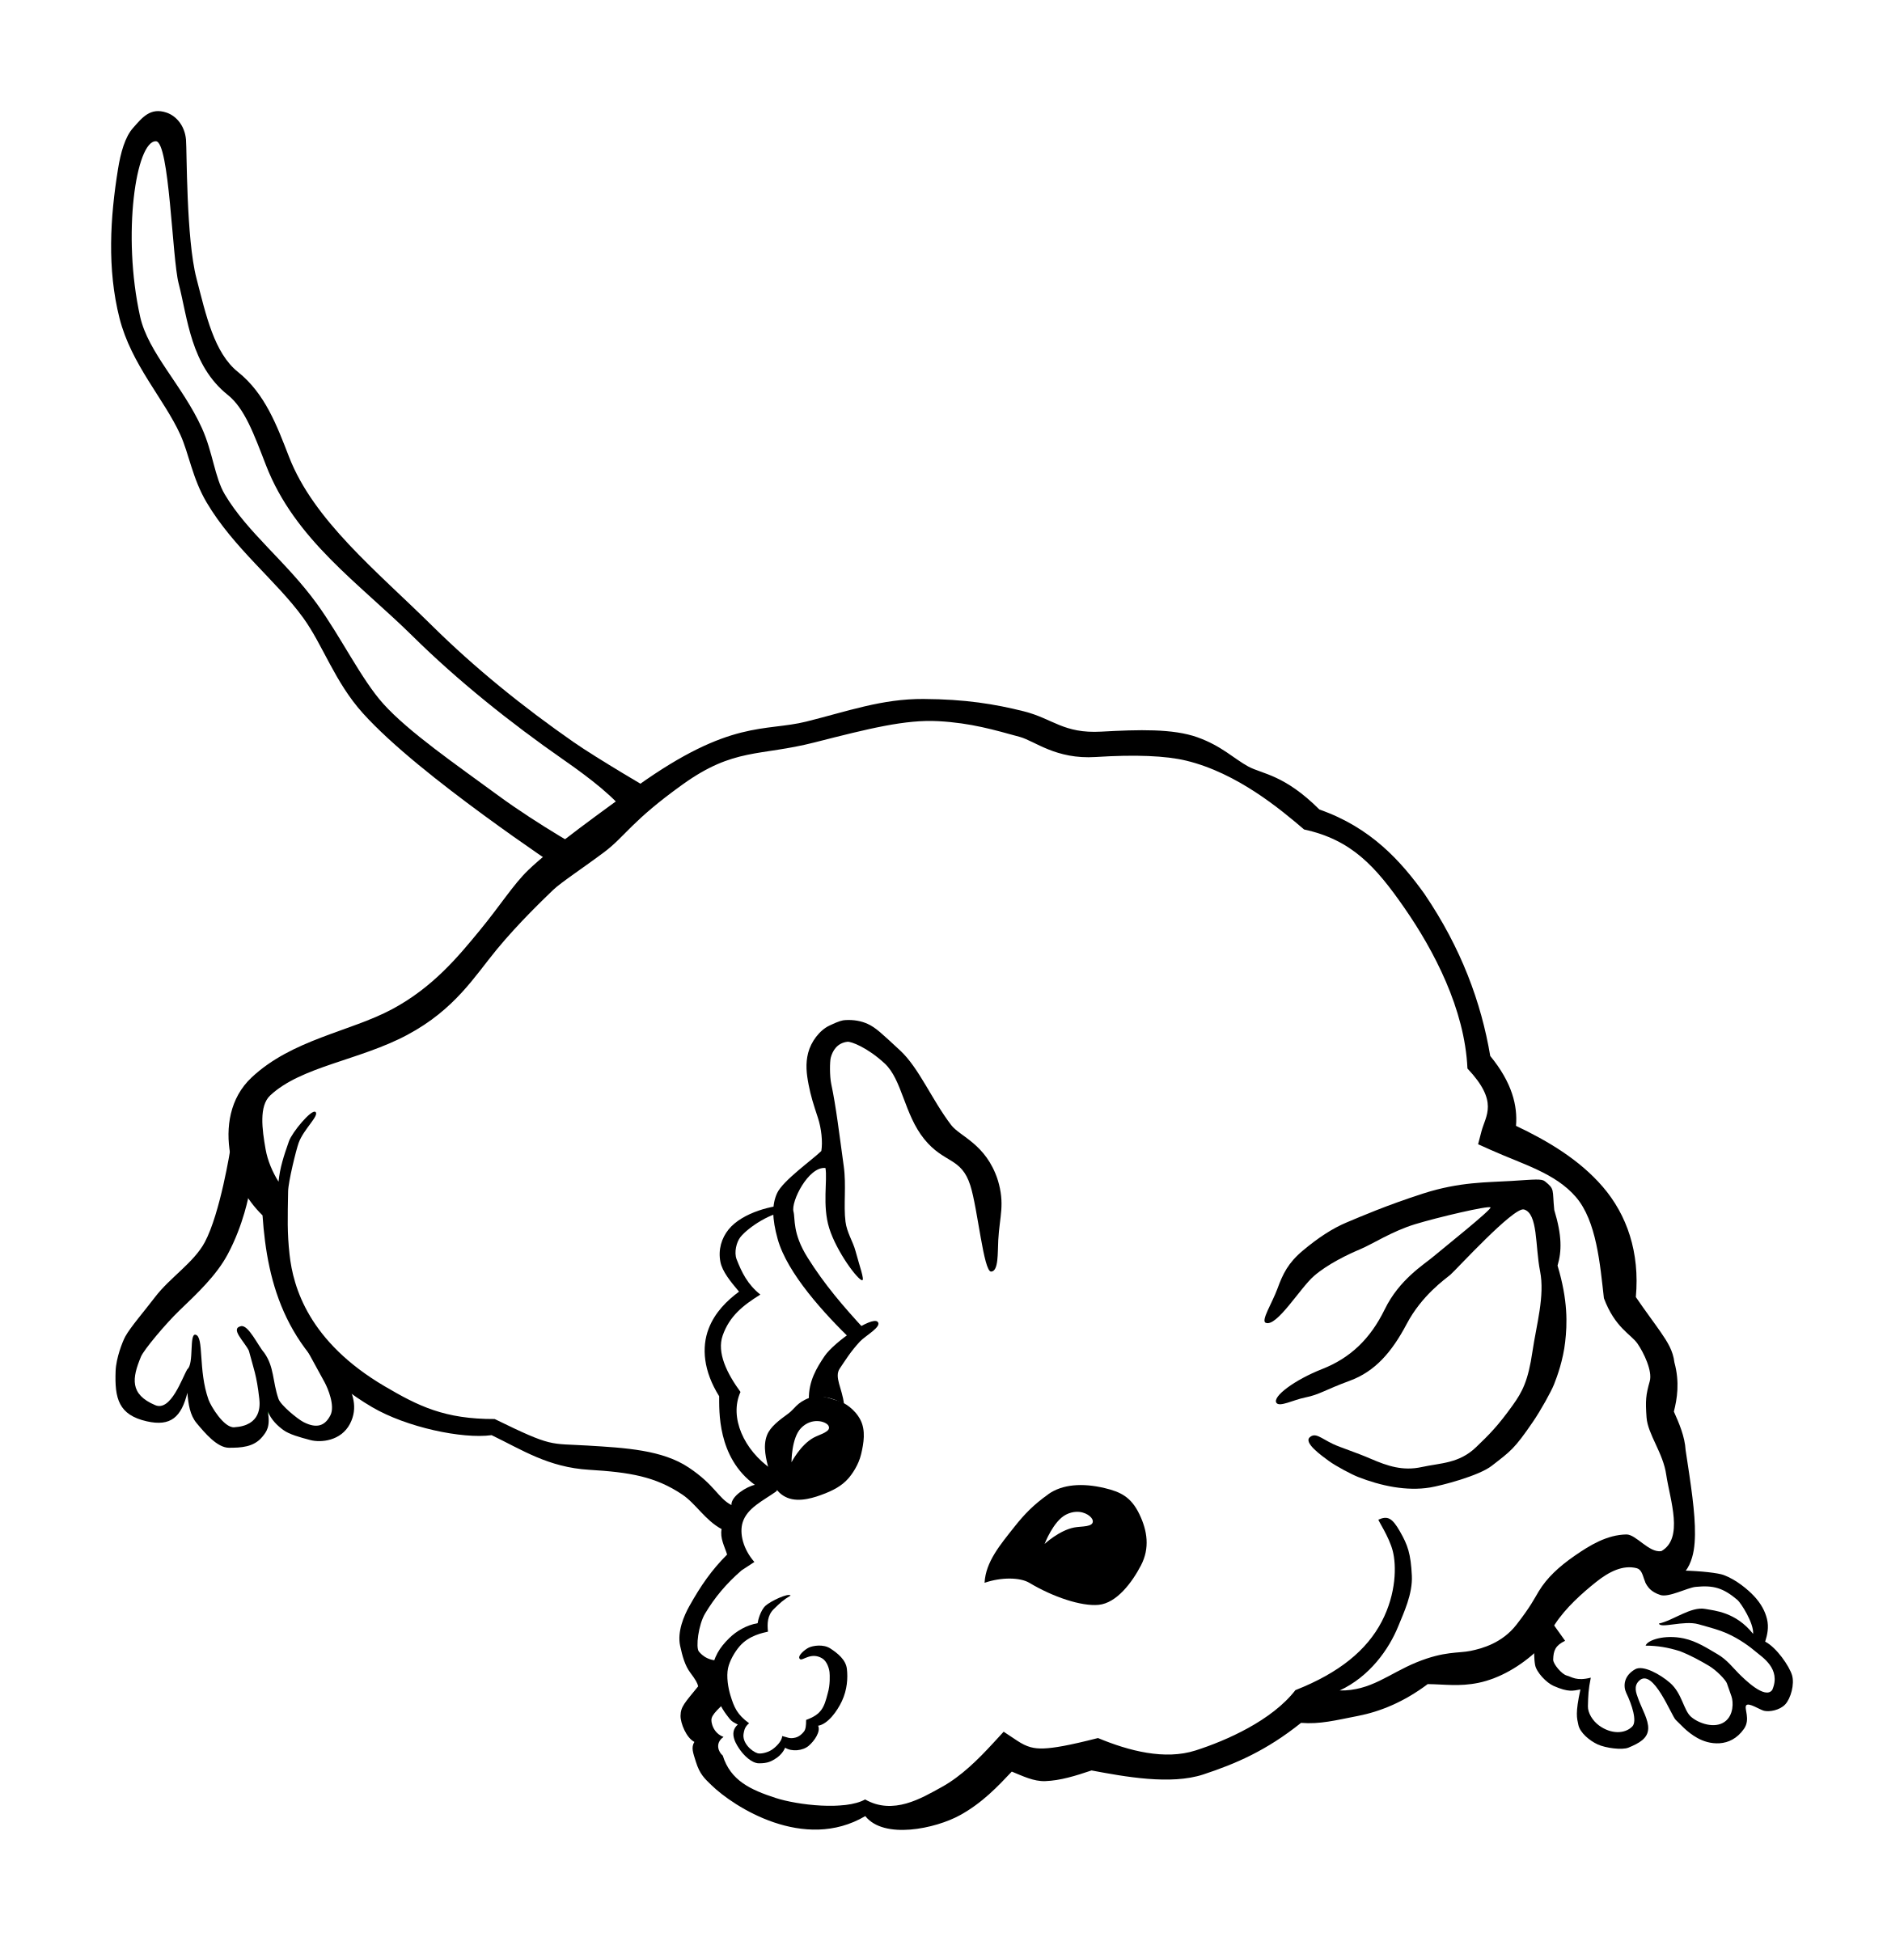 mouse - lineart by frankes